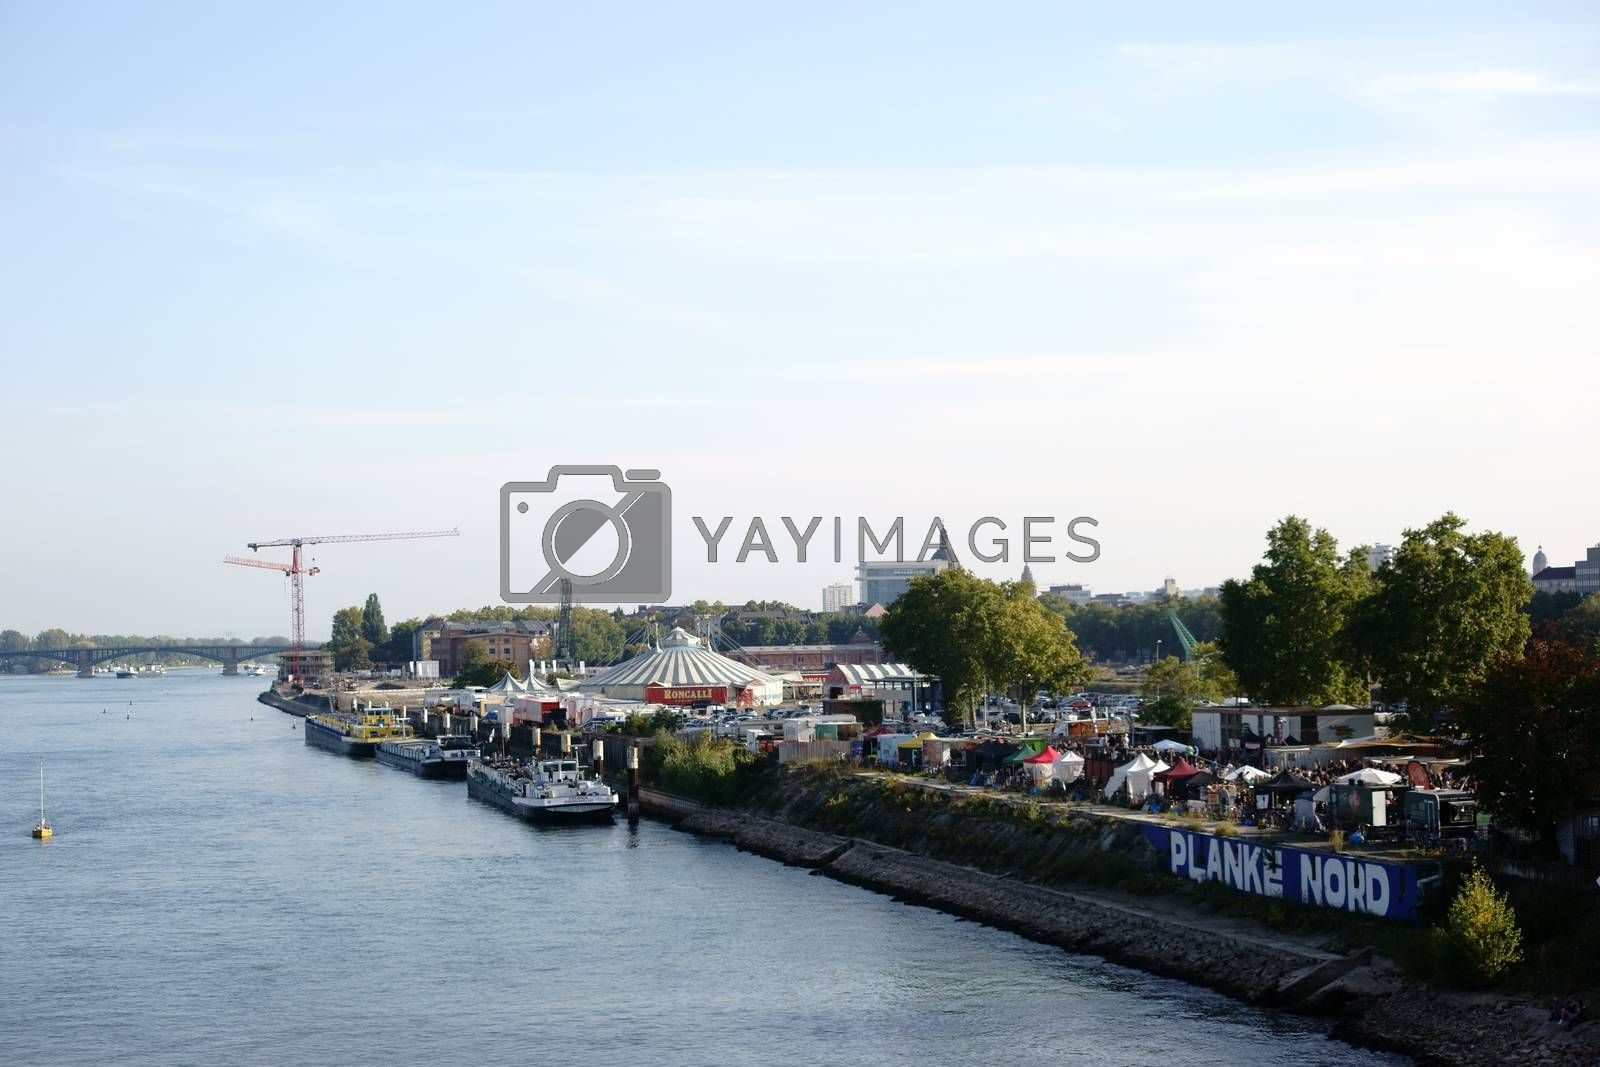 Mainz, Germany - October 02, 2015: The view over the river Rhine and the city of Mainz with a street food festival at the plank North on October 02, 2015 in Mainz.